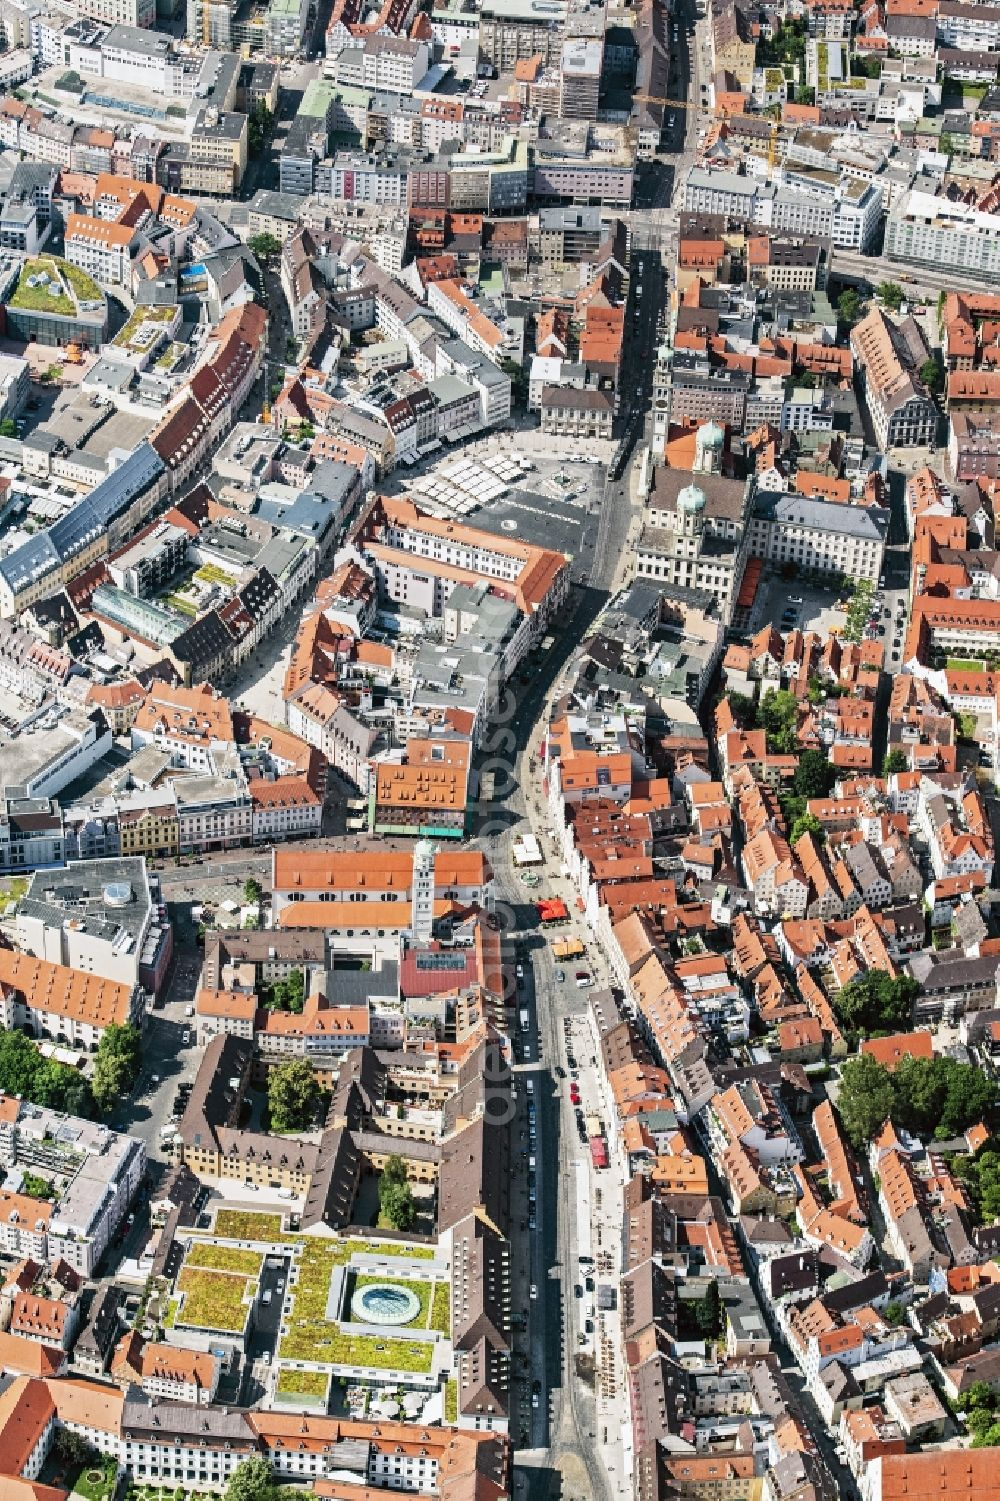 Augsburg from the bird's eye view: The city center in the downtown area in Augsburg in the state Bavaria